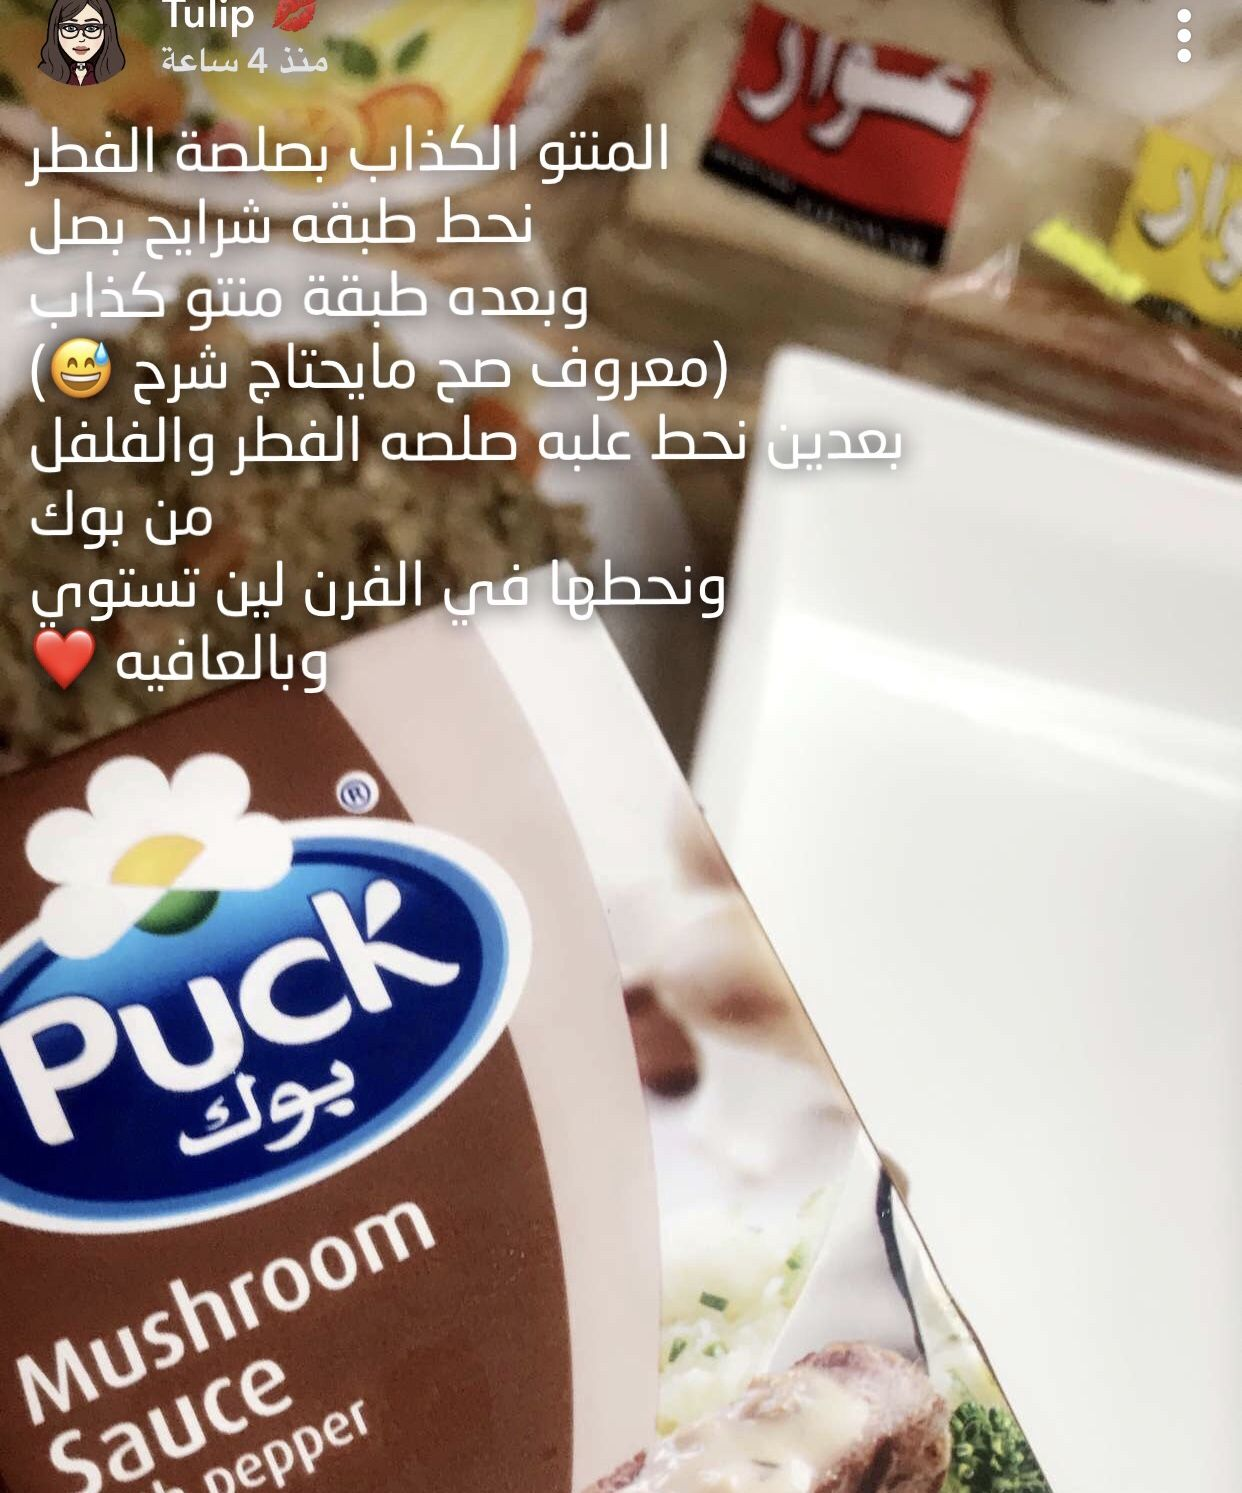 Pin By Batta On وصفاتي My Cook Hand Soap Bottle Soap Bottle Personal Care